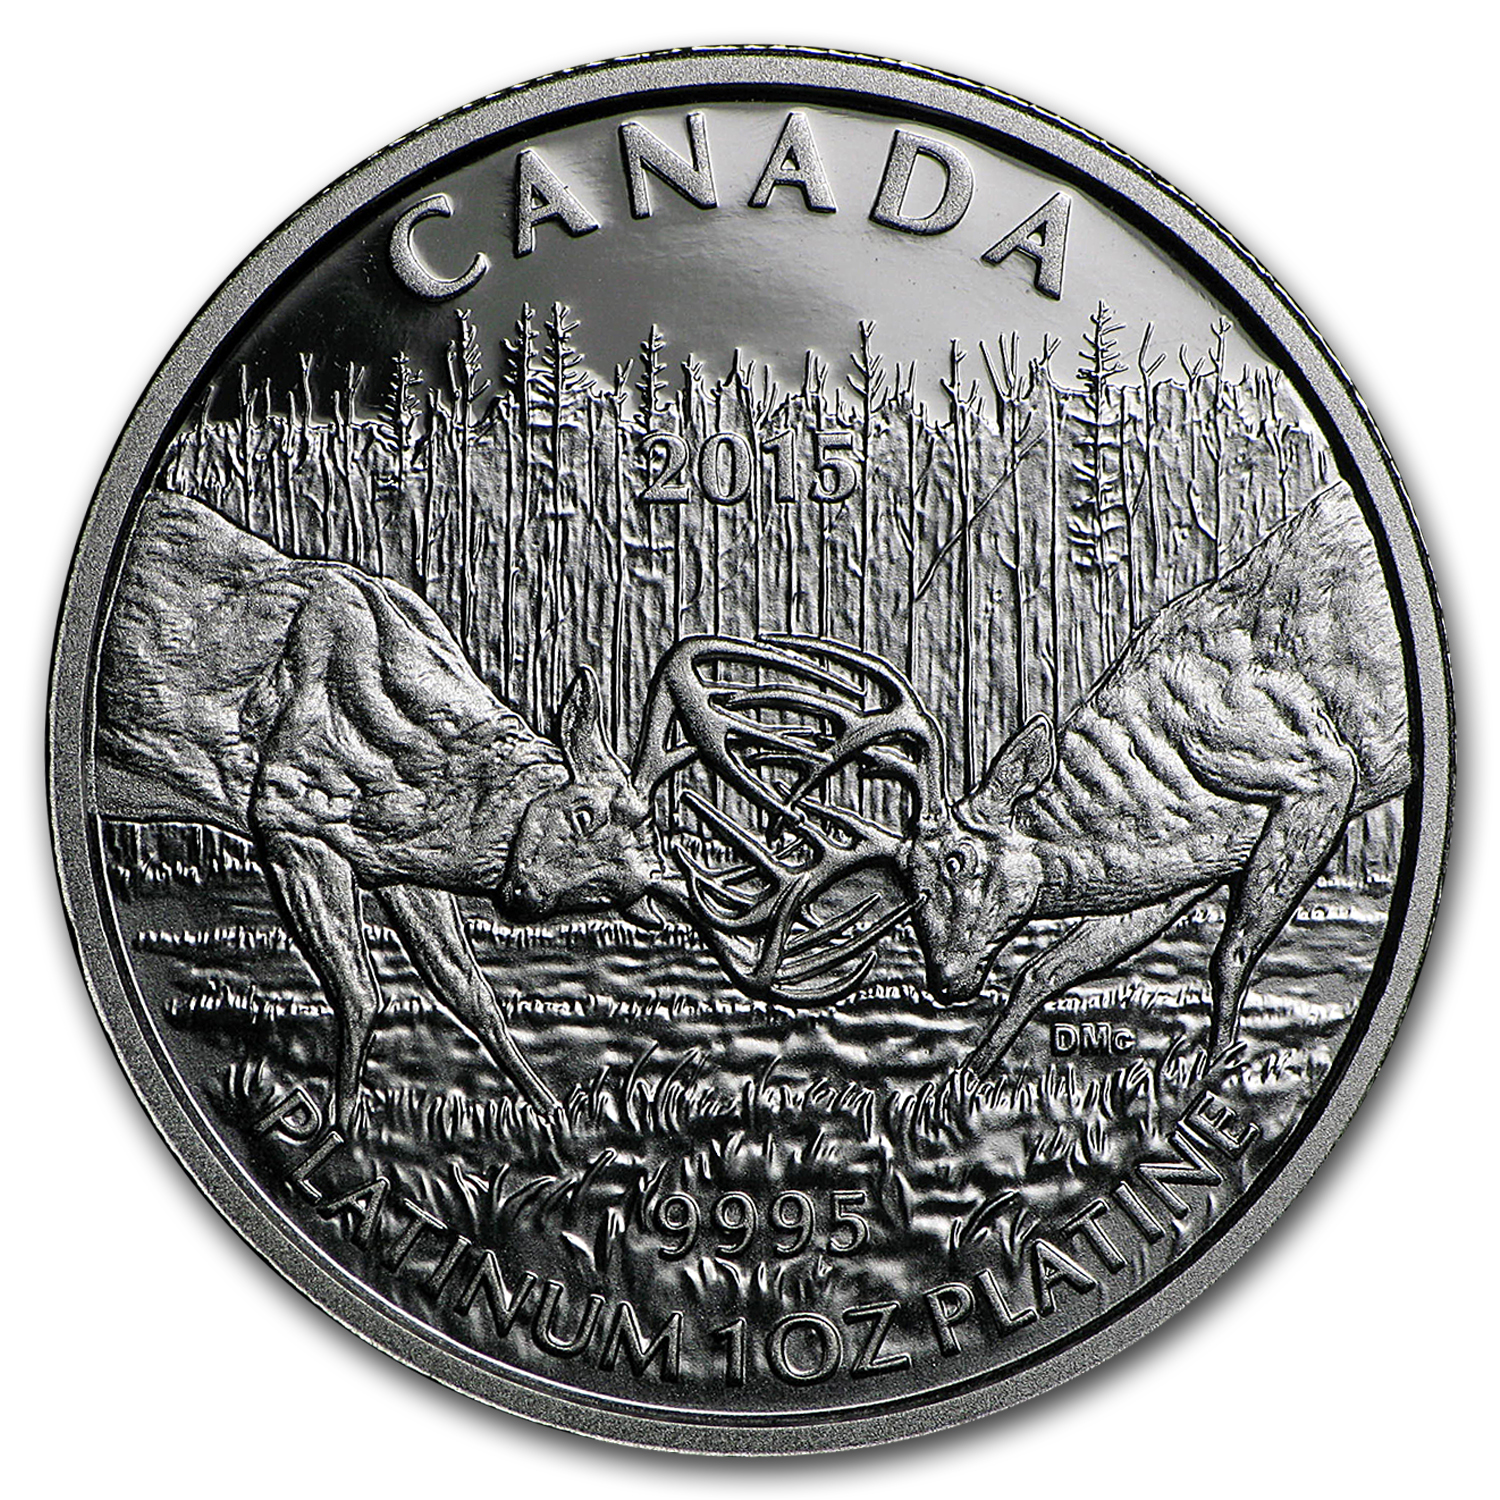 2015 Canada 1 oz Pf Platinum $300 White-Tailed Deer (Coin Only)